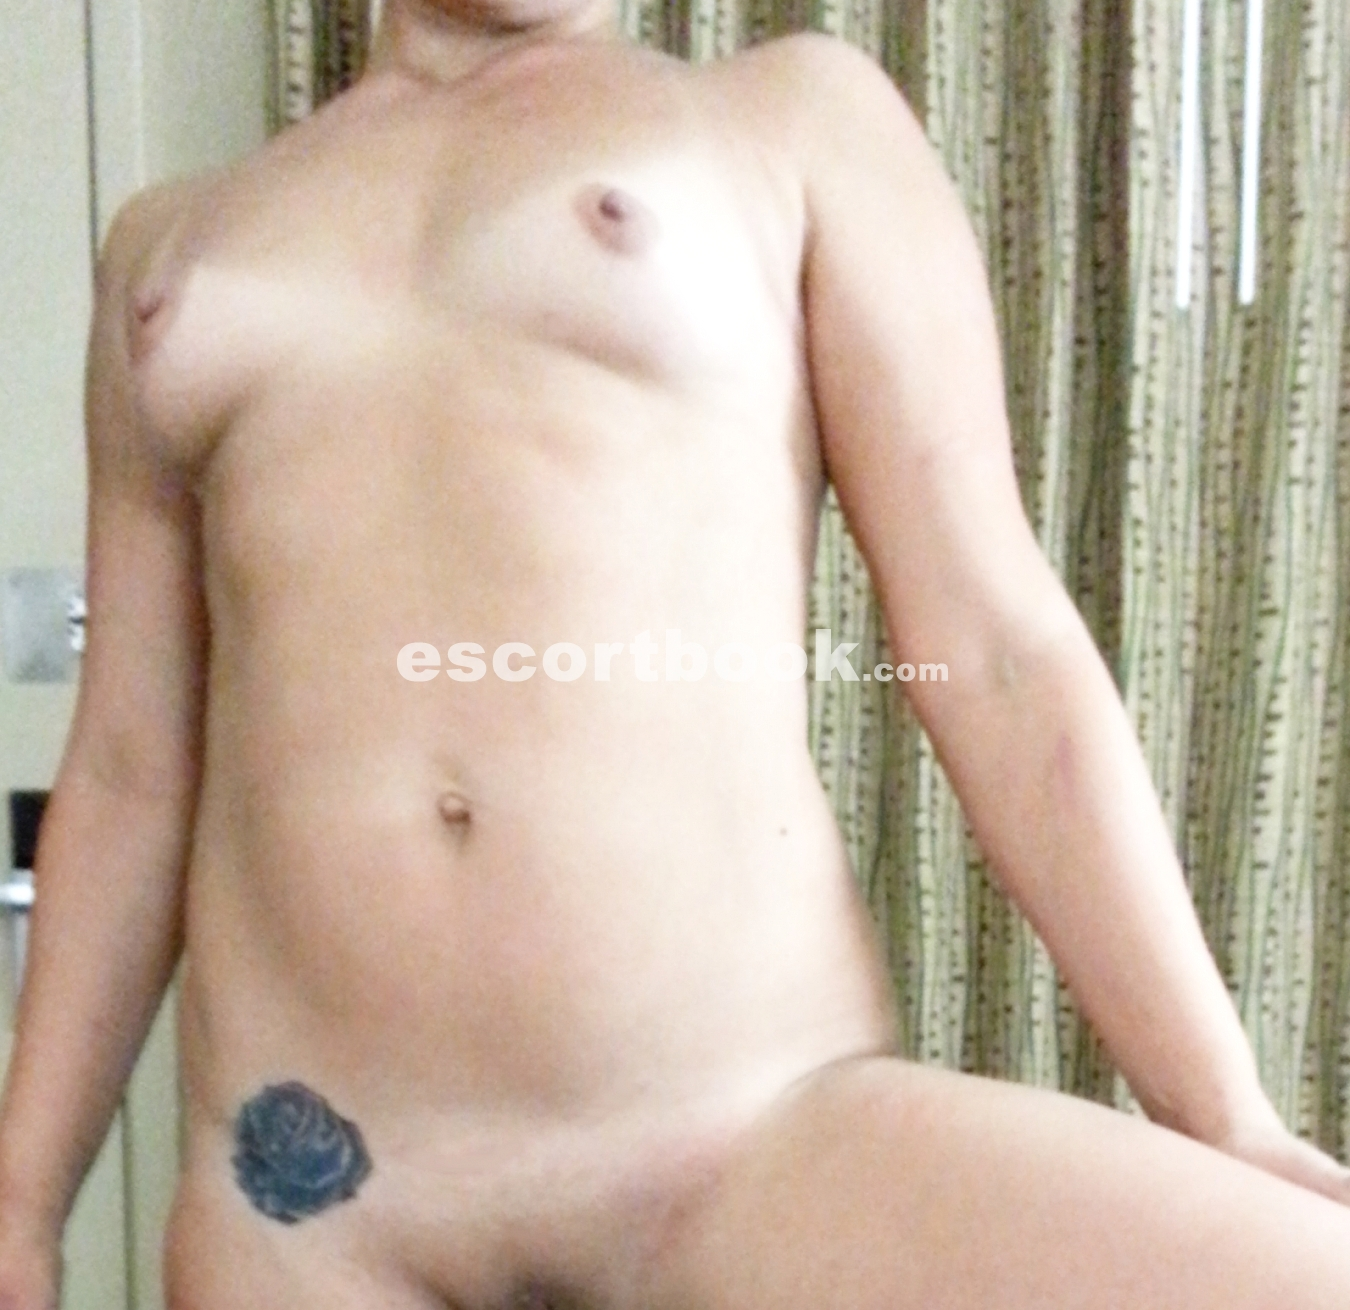 best what is a pse escort